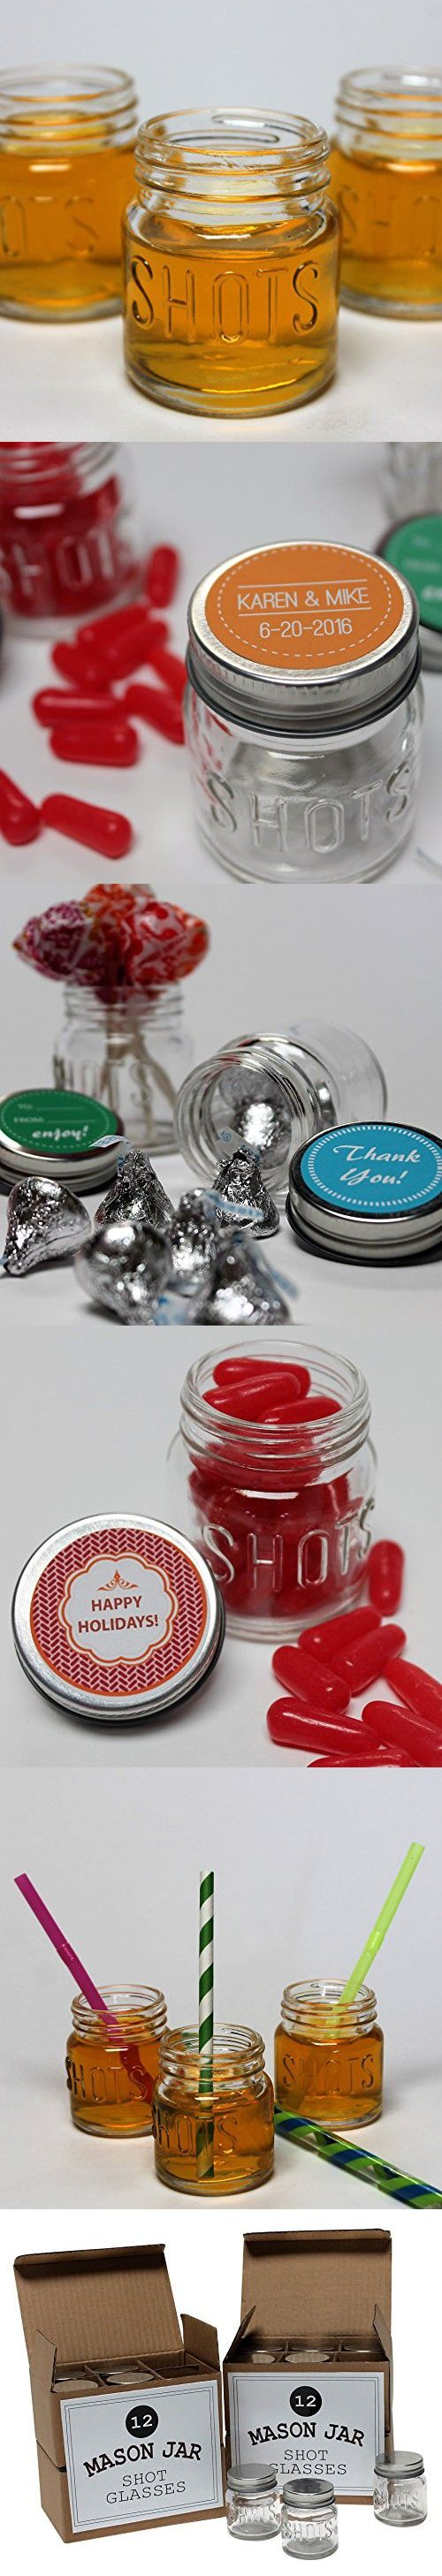 craft ideas for bridal shower favors%0A Mason Jar   Ounce Shot Glasses Set of    With LeakProof Lids  Great